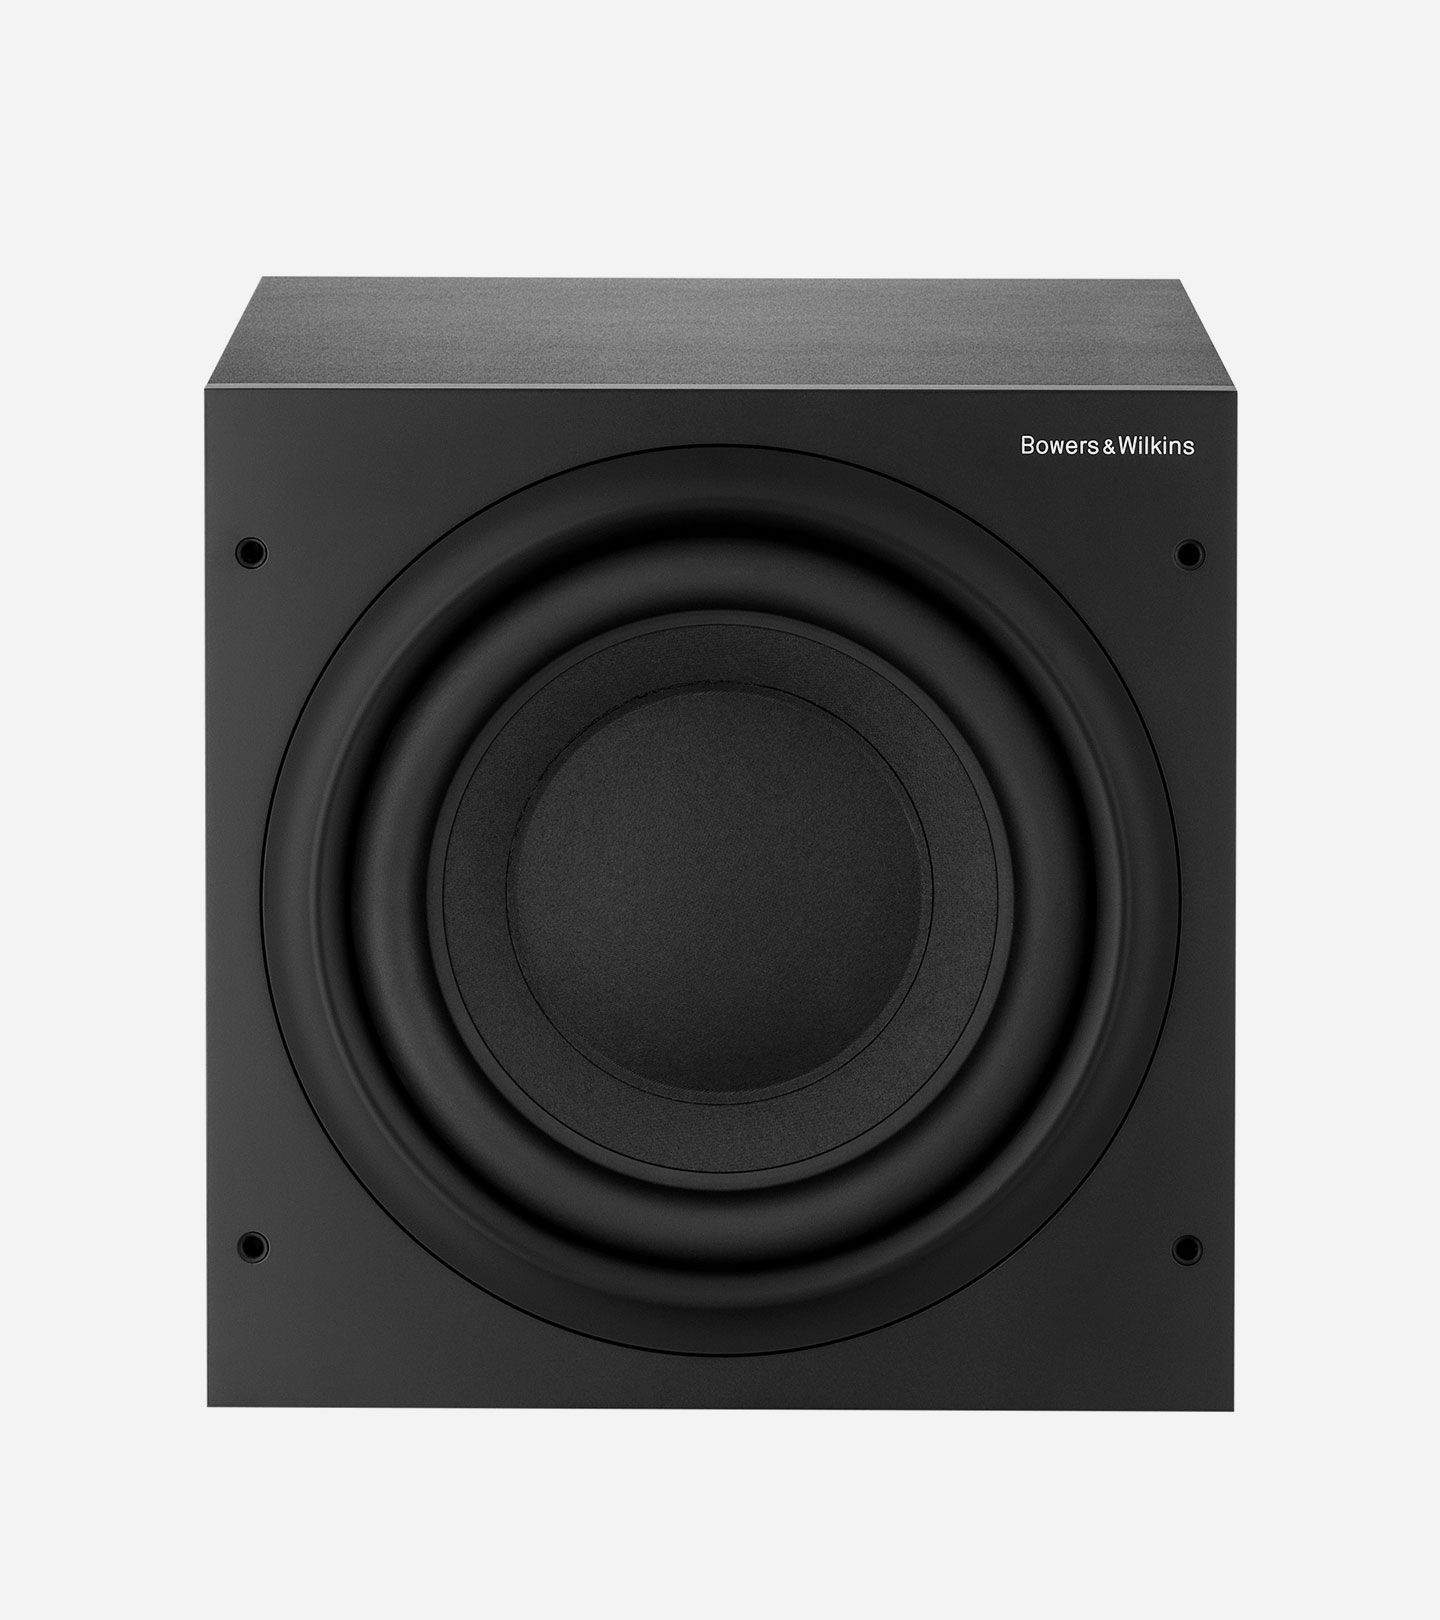 BOWERS&WILKINS ASW608